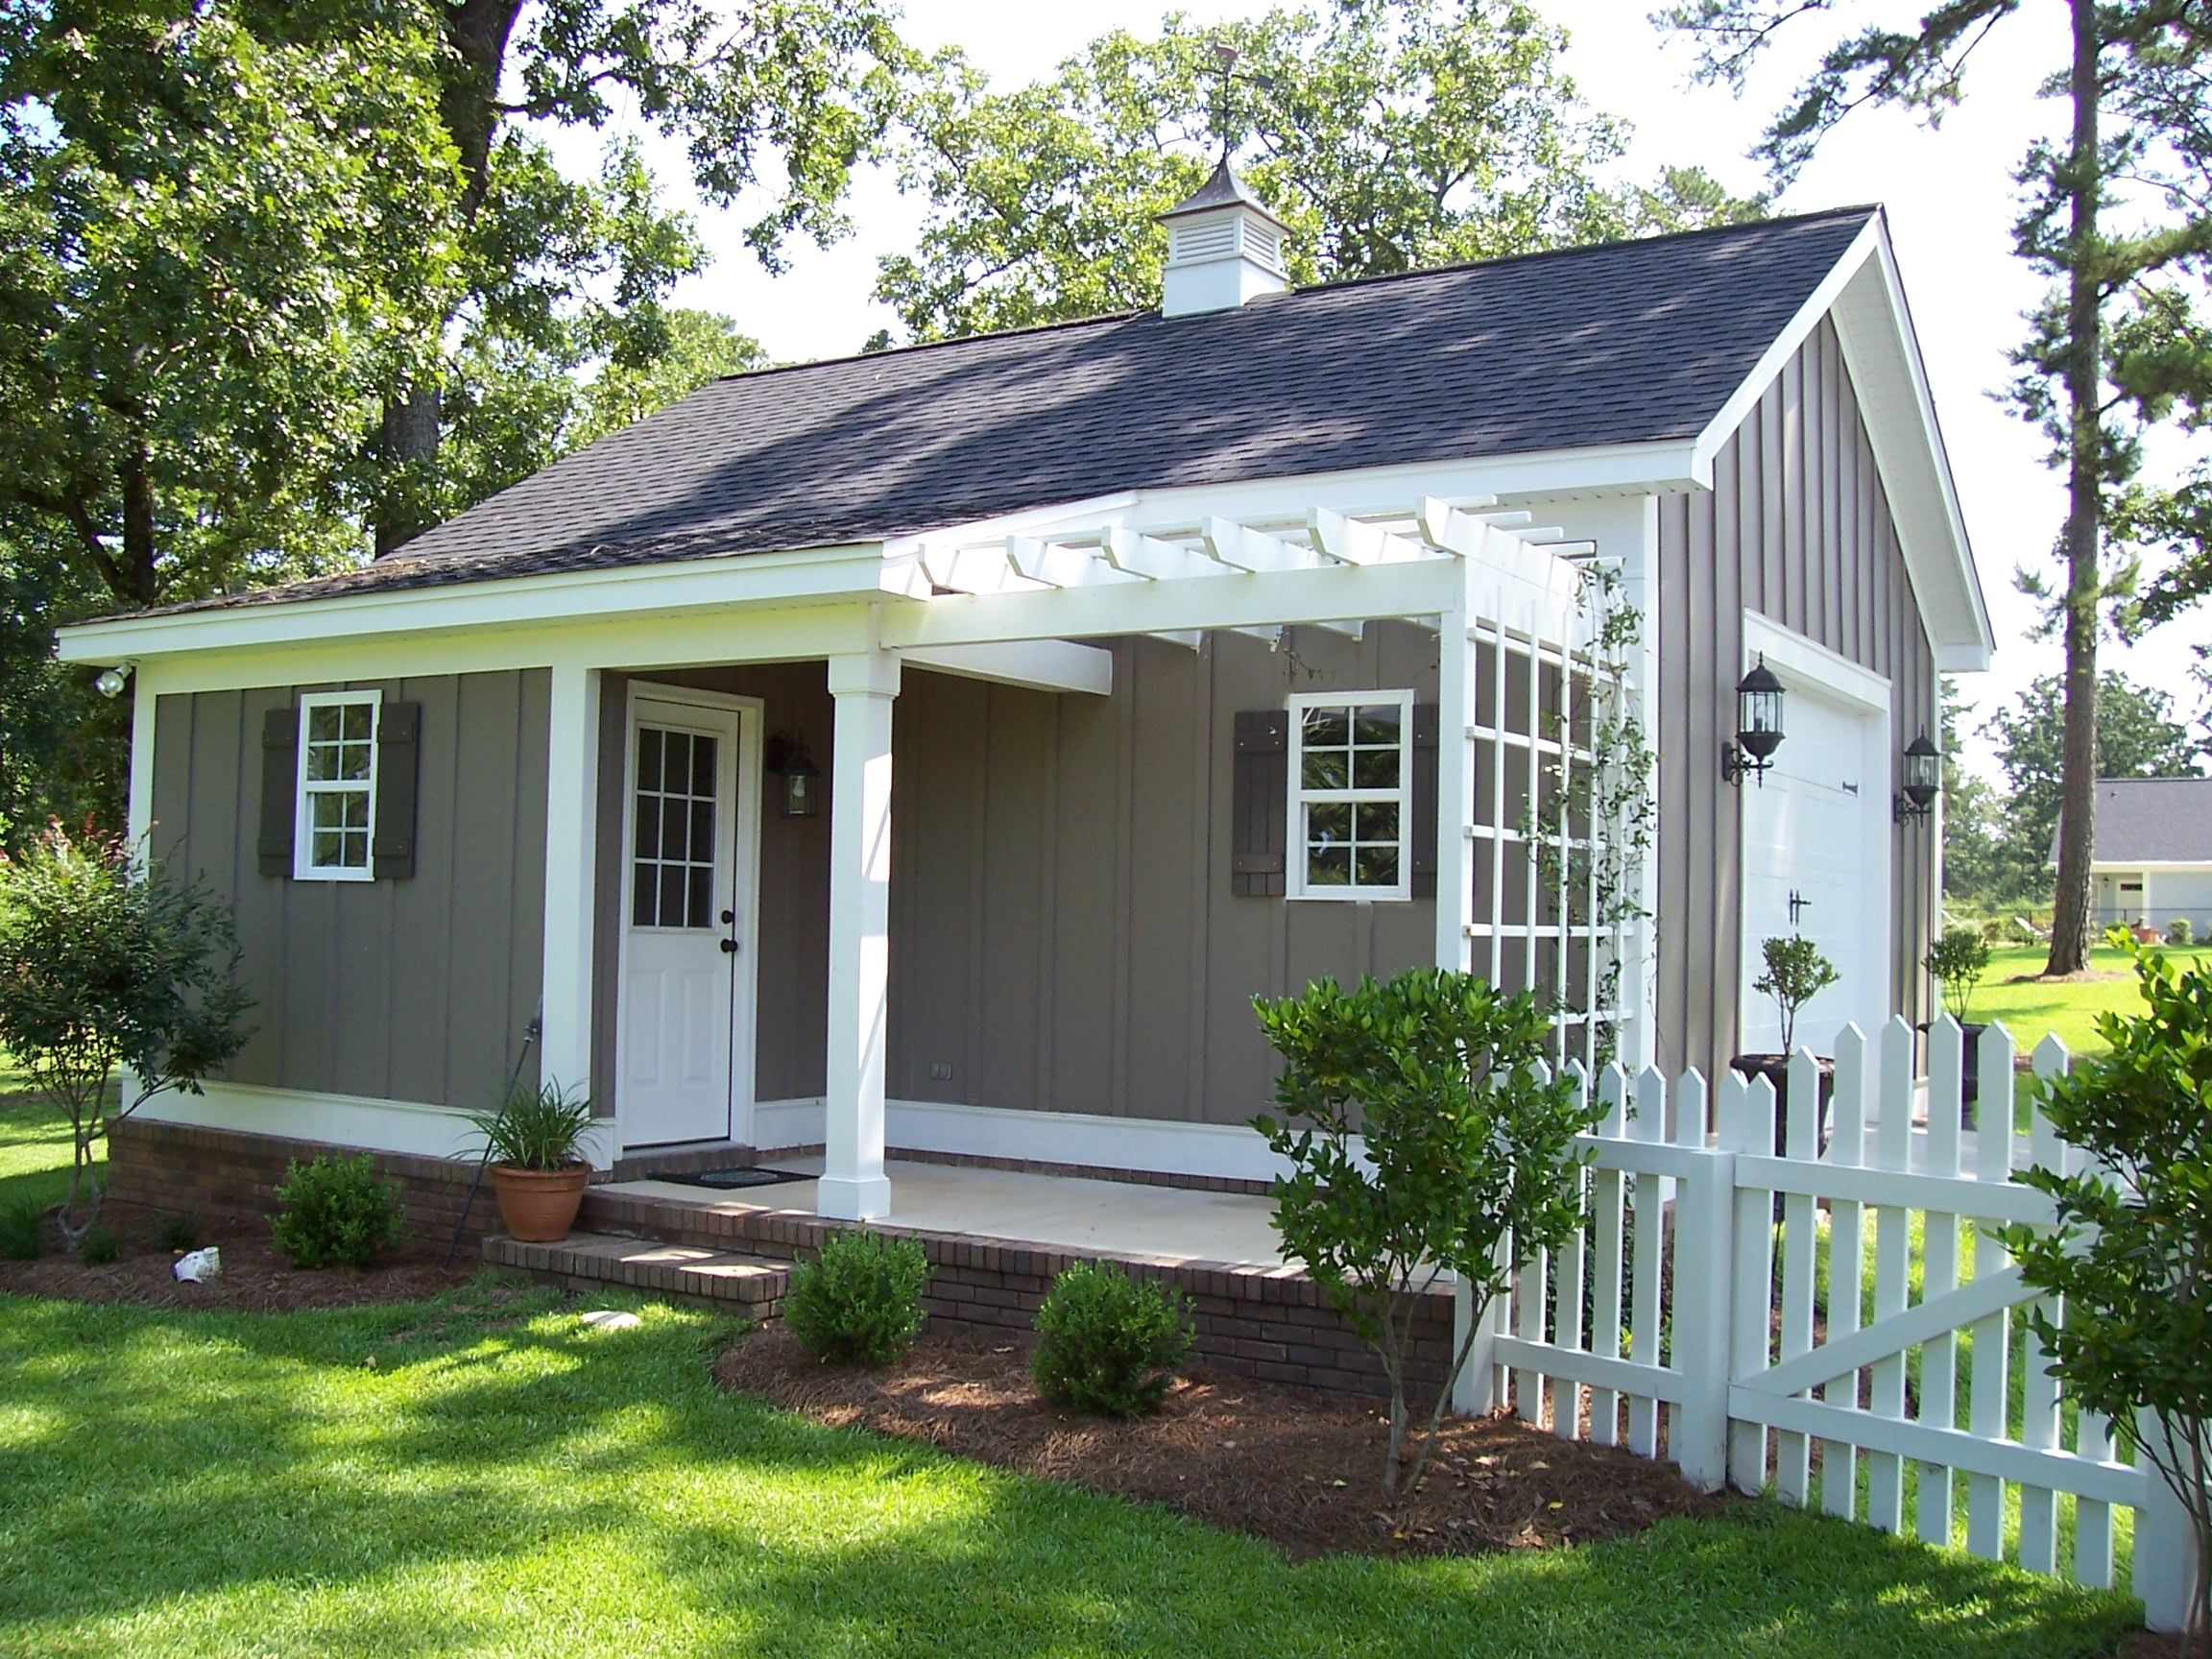 custom built garden shed workshop freestanding garage with pergola covered porch lee - Garden Sheds Georgia